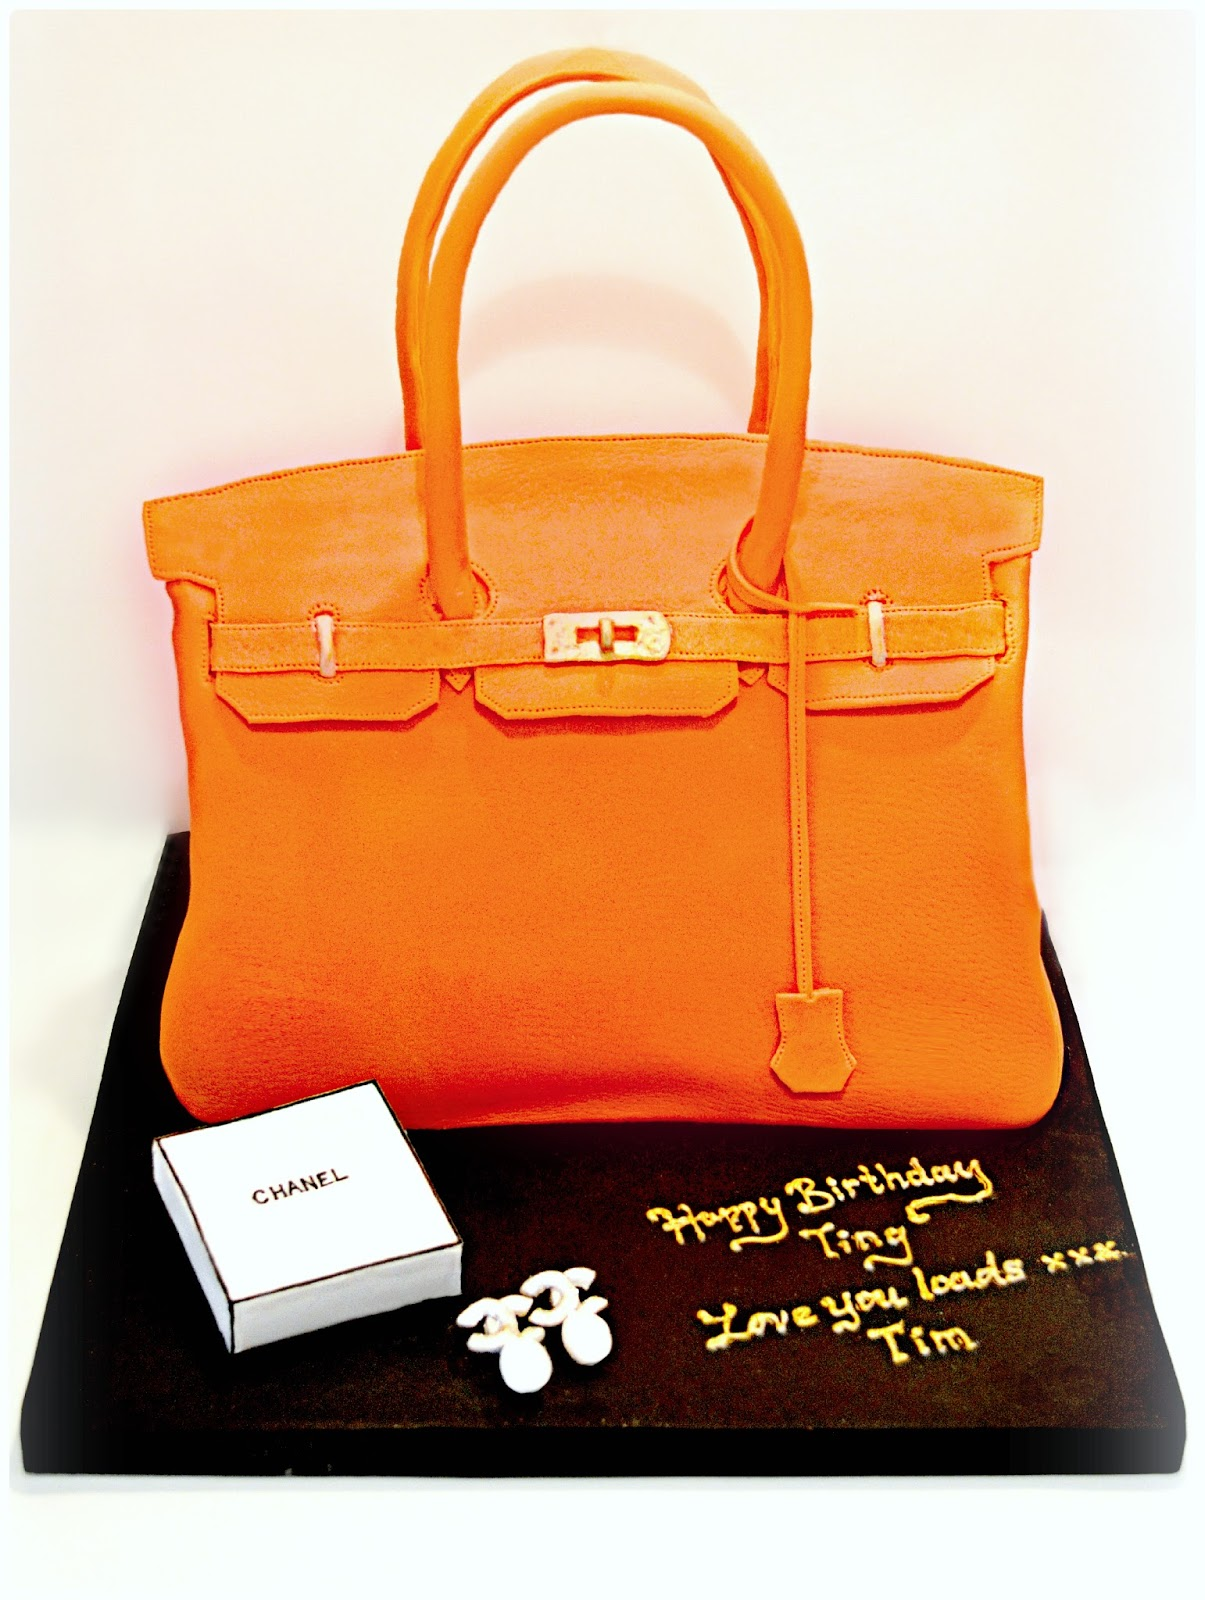 Cherie Kelly's Orange Hermès Birkin Handbag Cake with a pair of Chanel Pearl Earrings